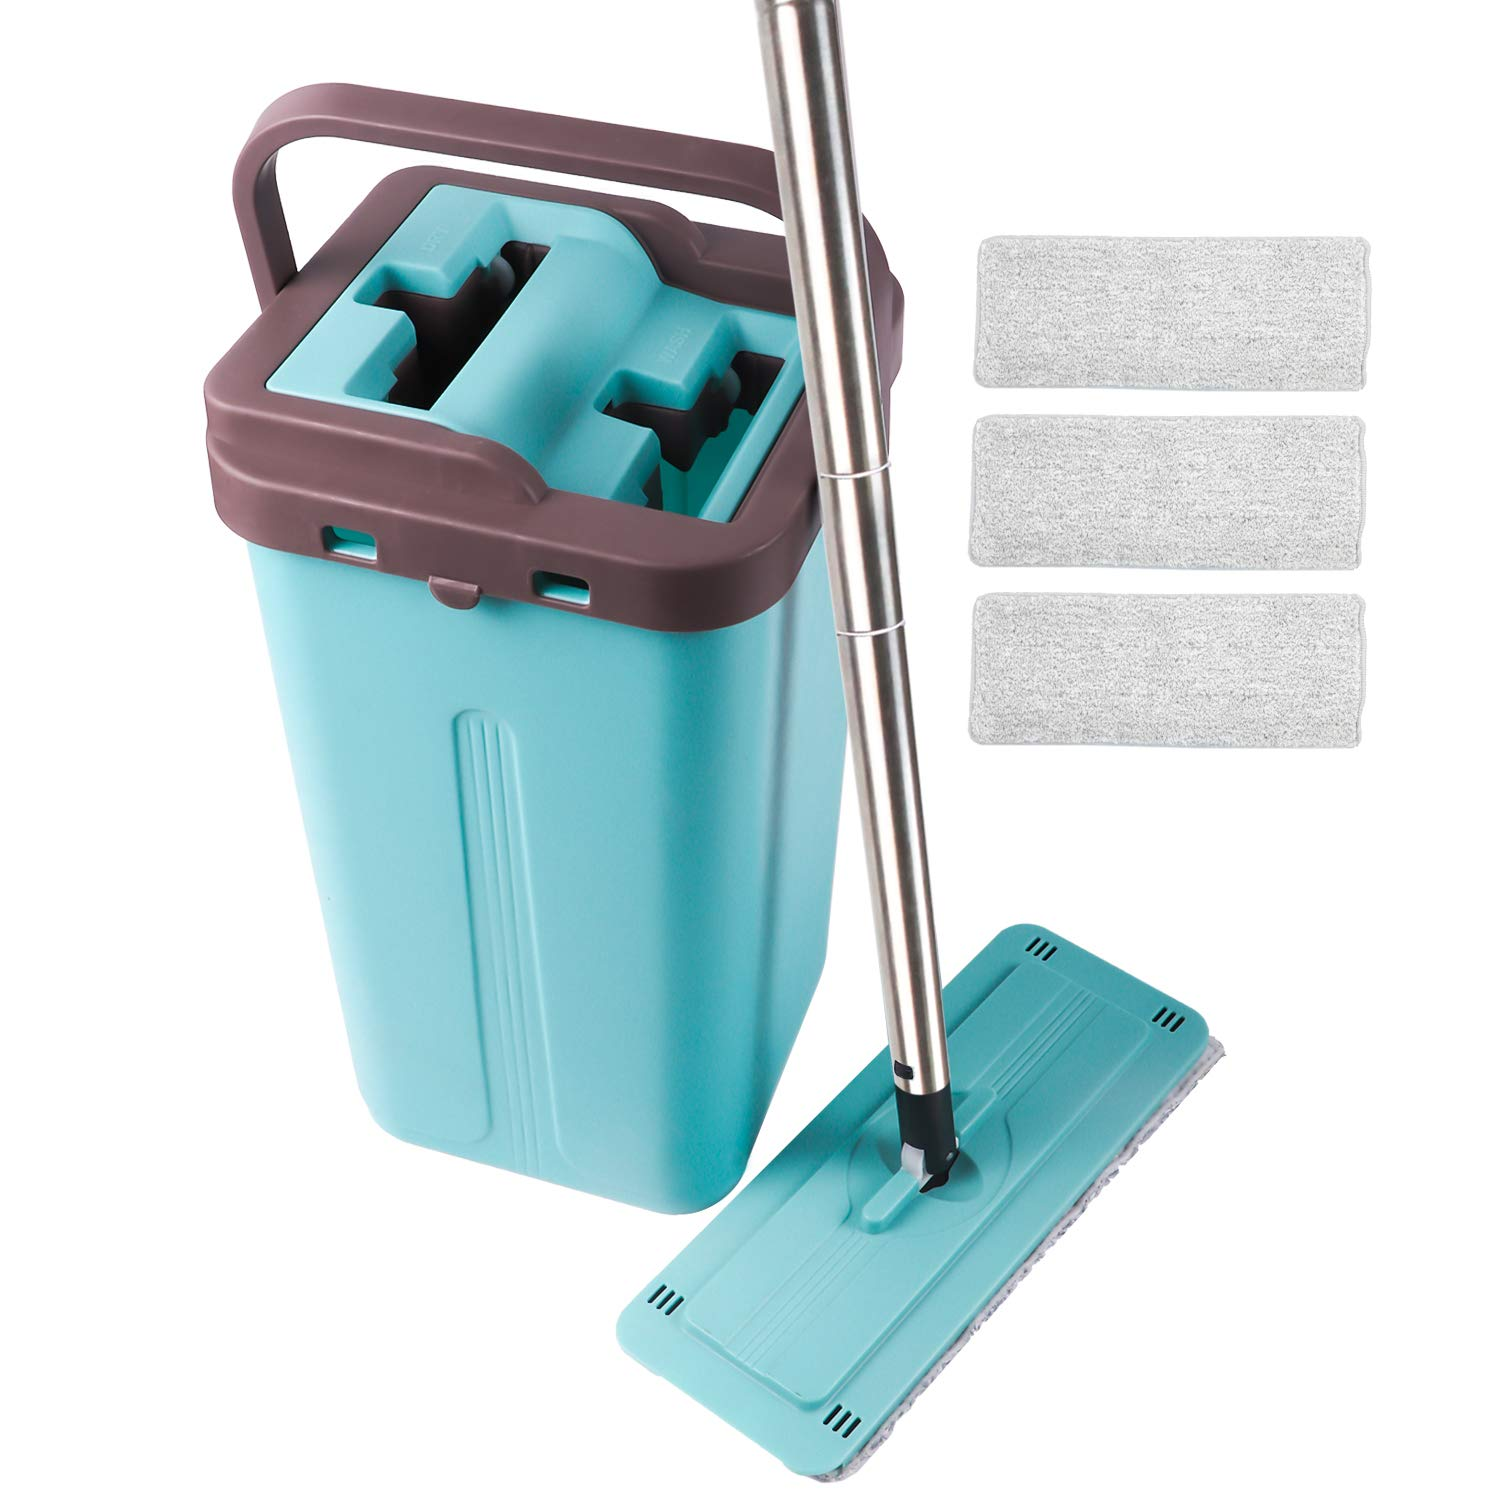 Squeeze Flat Mop, 1 Bucket, Wet Dry Floor Cleaning Hand Free, 3 Reusable Microfiber Mop Pads for Home Kitchen Floor Cleaning, Stainless Steel Handle